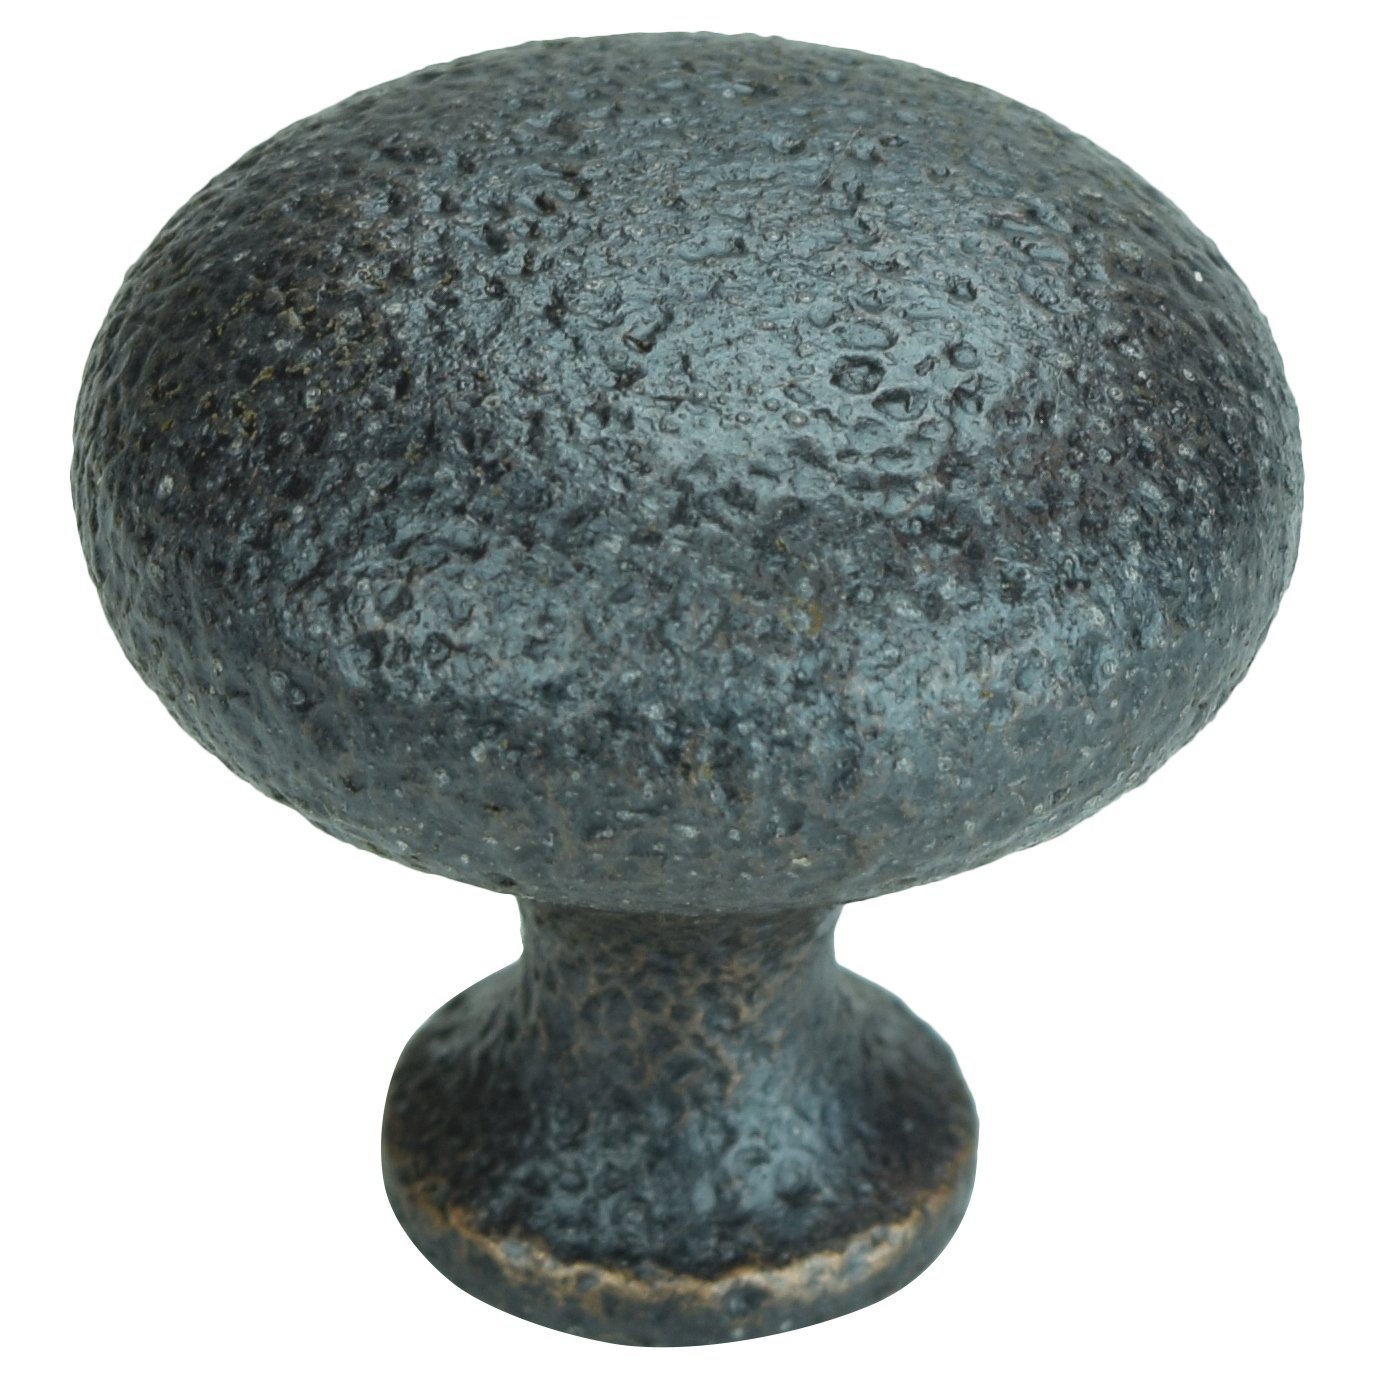 (Lot of 10) Rustic Hammered Oil Rubbed Bronze Cabinet Knobs Pulls C015ORB Ancient Treasures